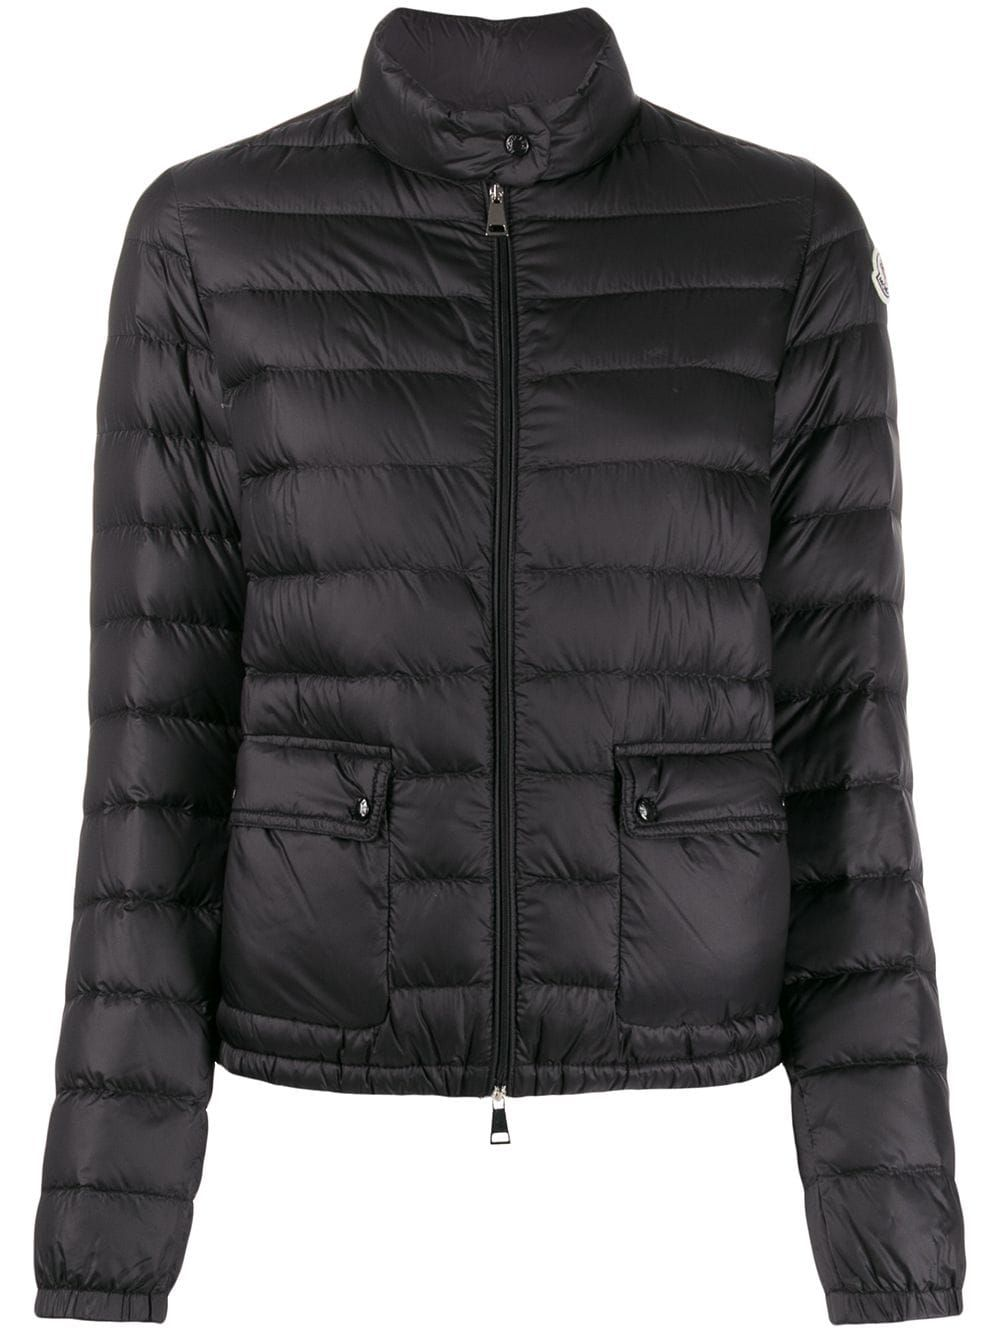 Moncler Fitted Padded Jacket Farfetch Moncler, Padded